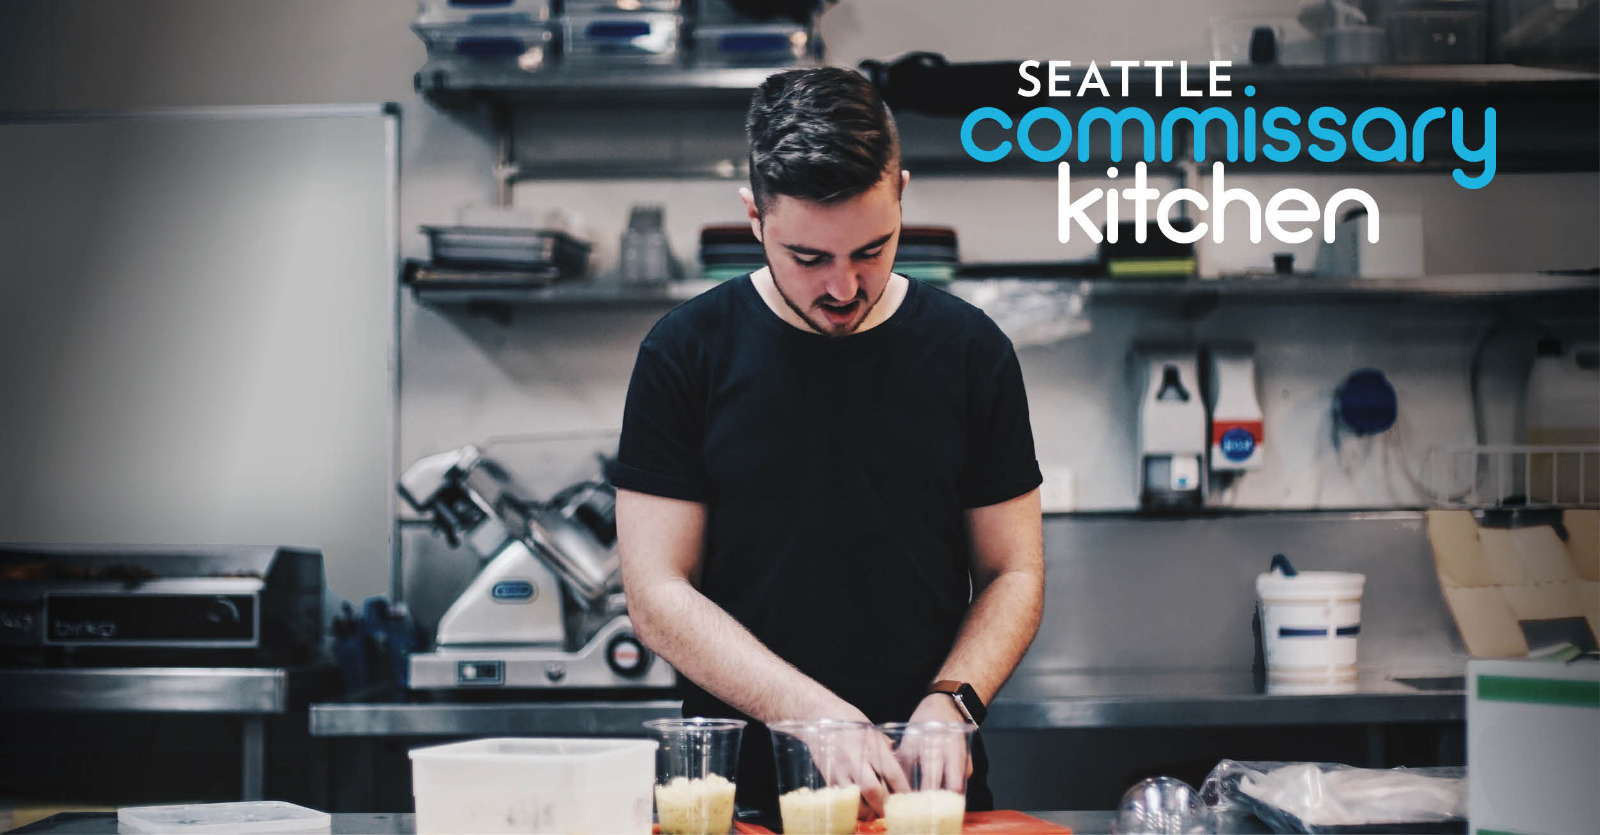 Seattle Commissary Kitchen